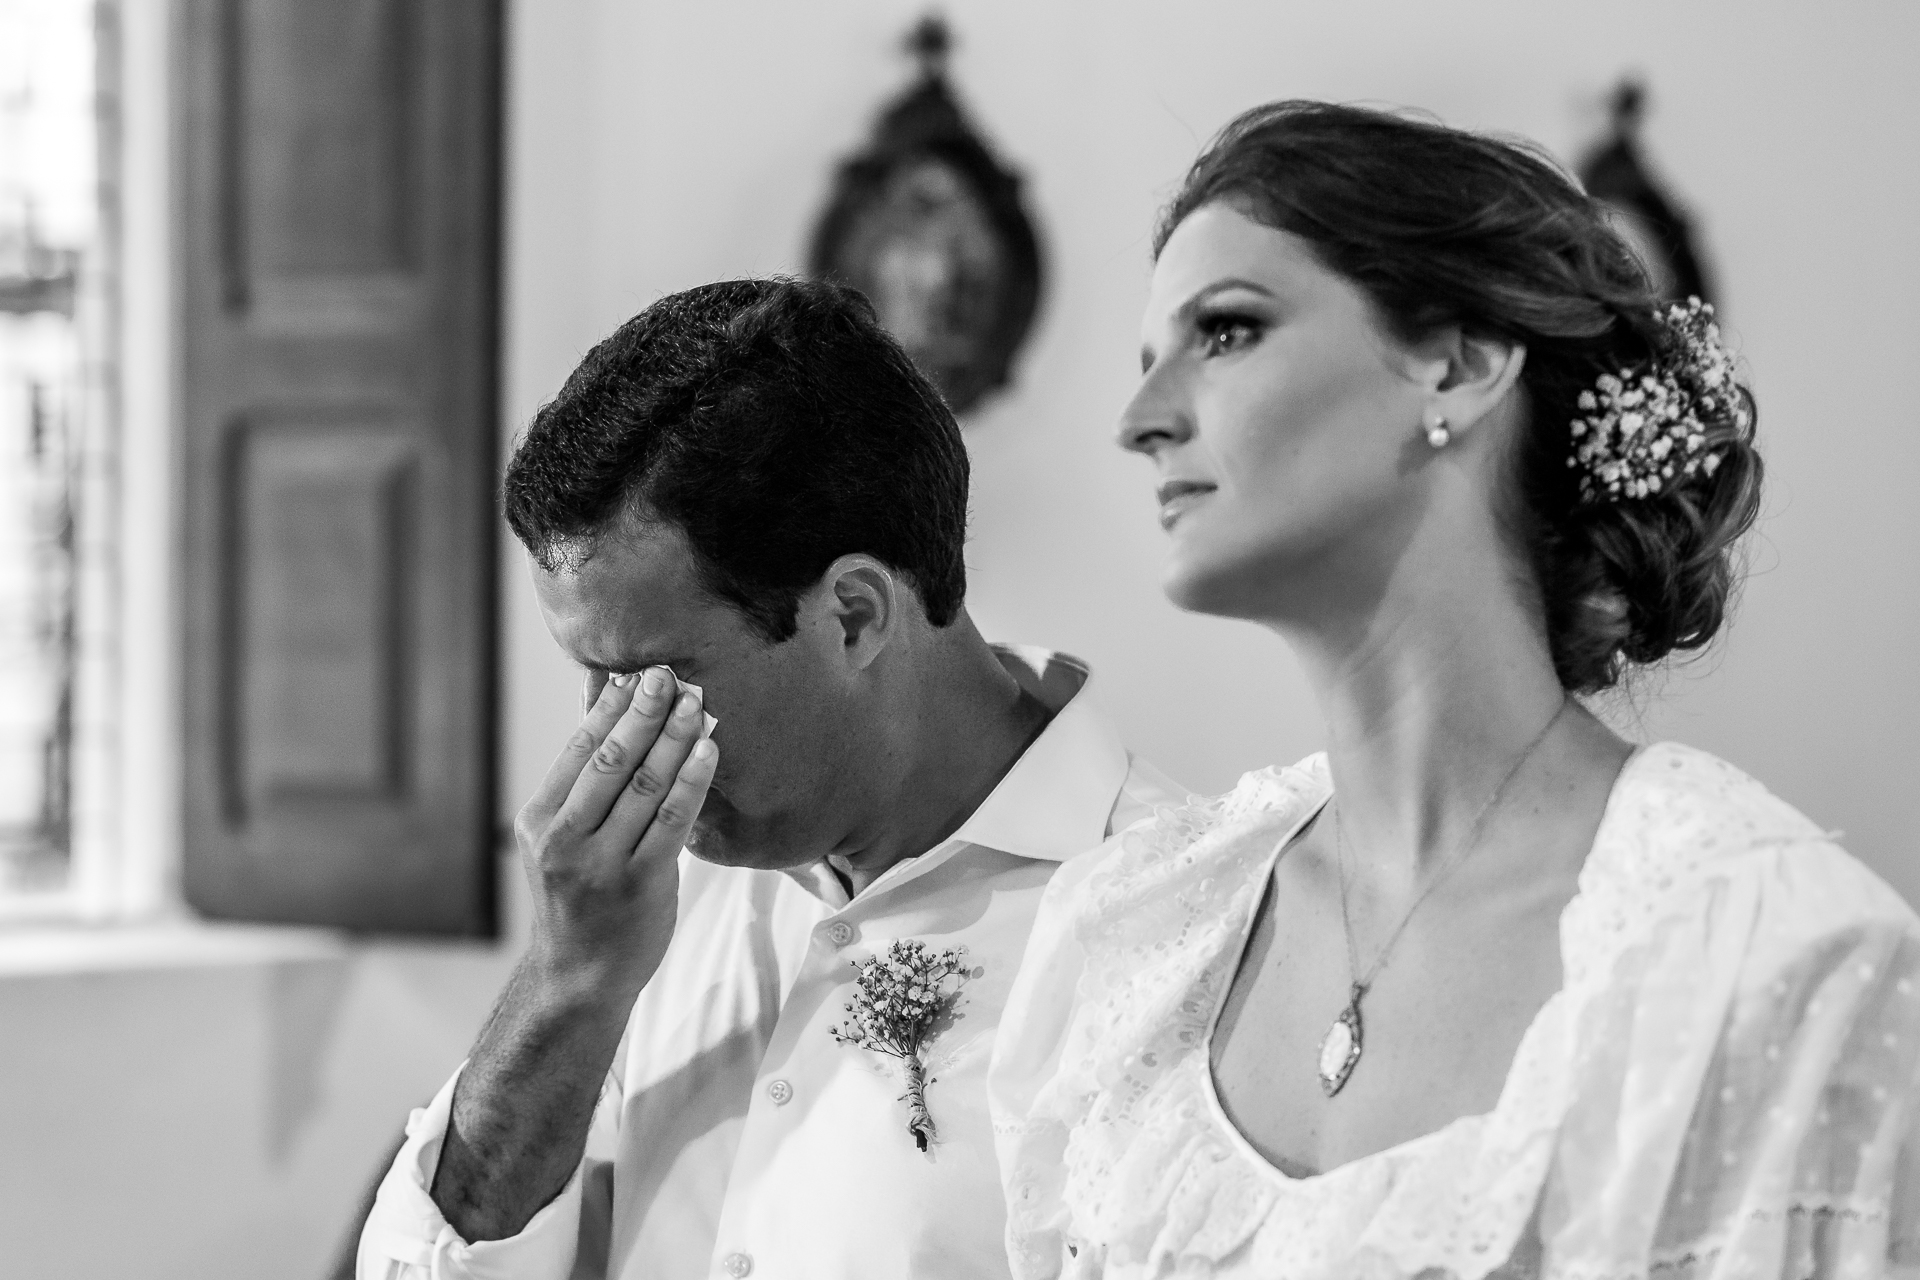 São Gonçalo Church Pic from a Maceio Wedding | The groom wipes away a tear during the ceremony